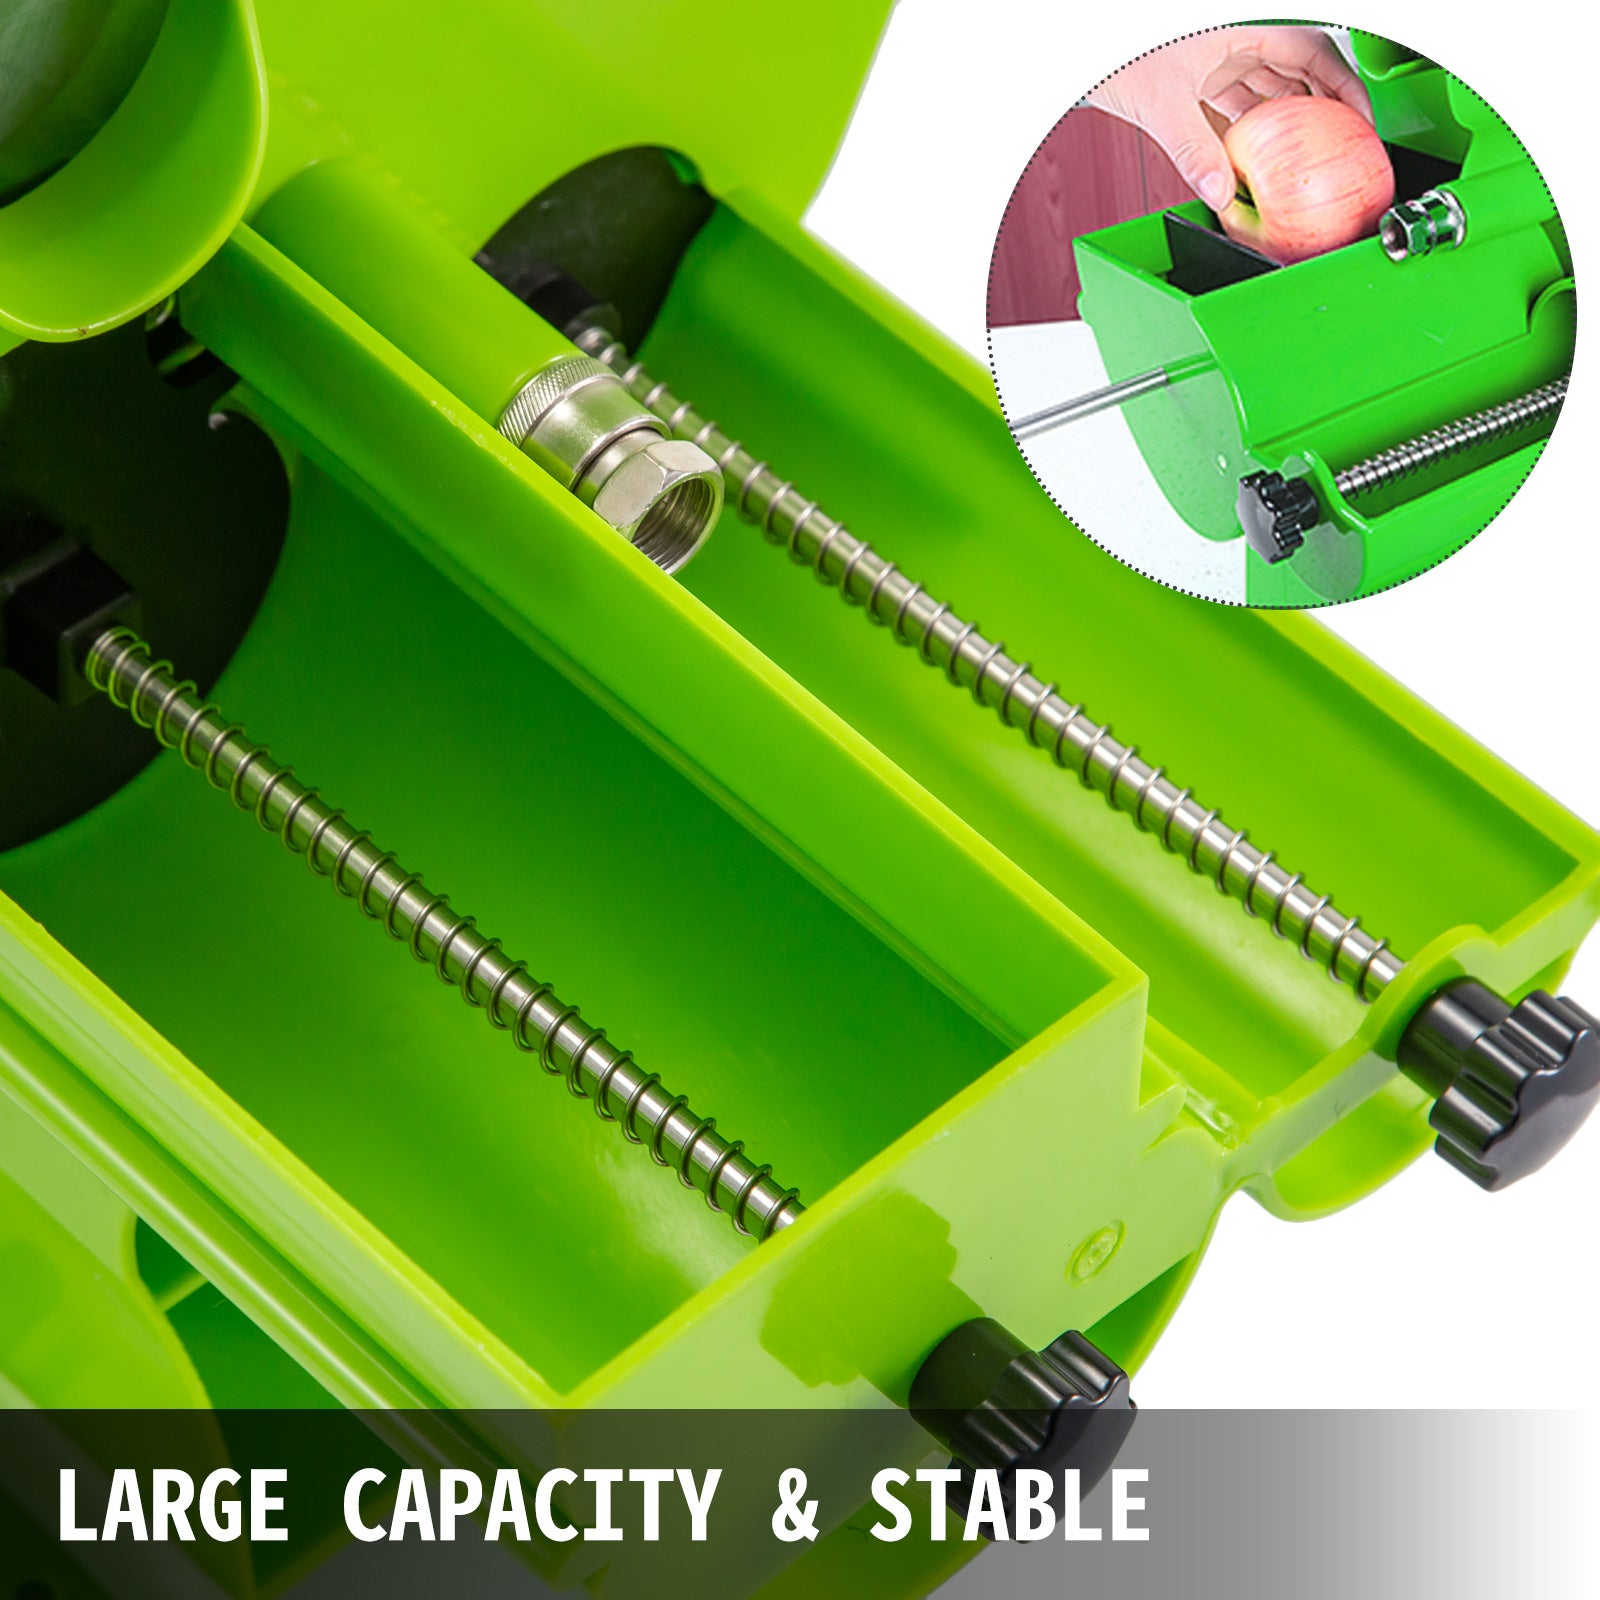 0-10mm Fruit Vegetable Slicer Cutter Machine Onion Chopper Shredder 3pcs/time